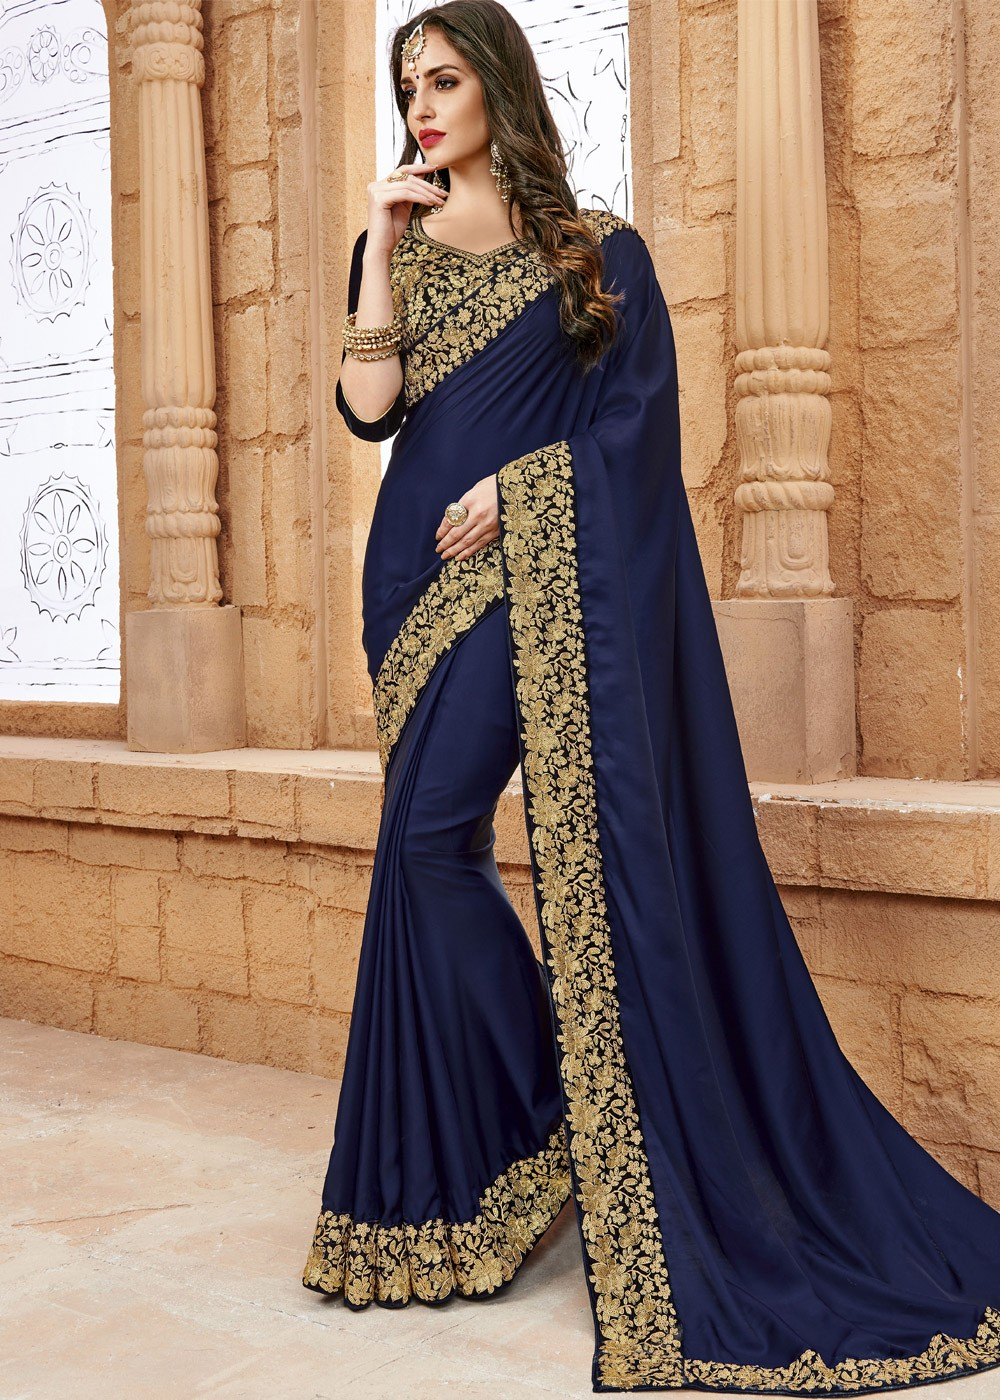 India Online Internet Use In India And The Development Of: Navy Blue Crepe Saree With Blouse Most Loved Styles 1694SR09